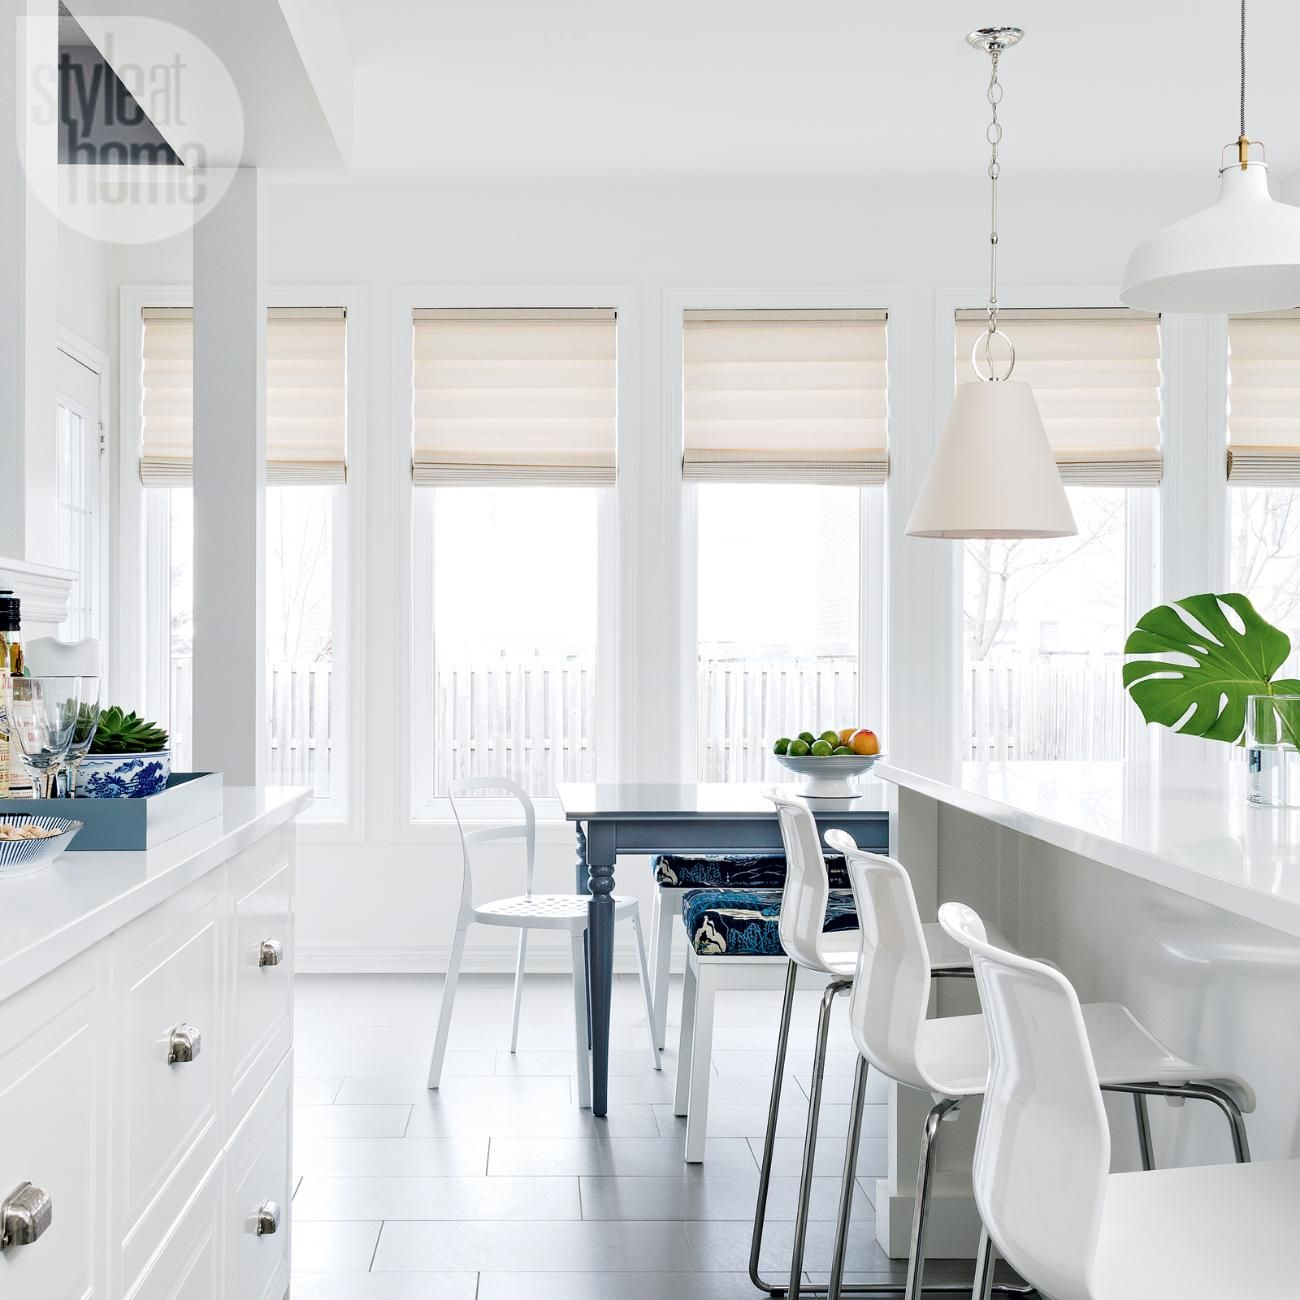 Kitchen Design: Classic And Contemporary In 2019